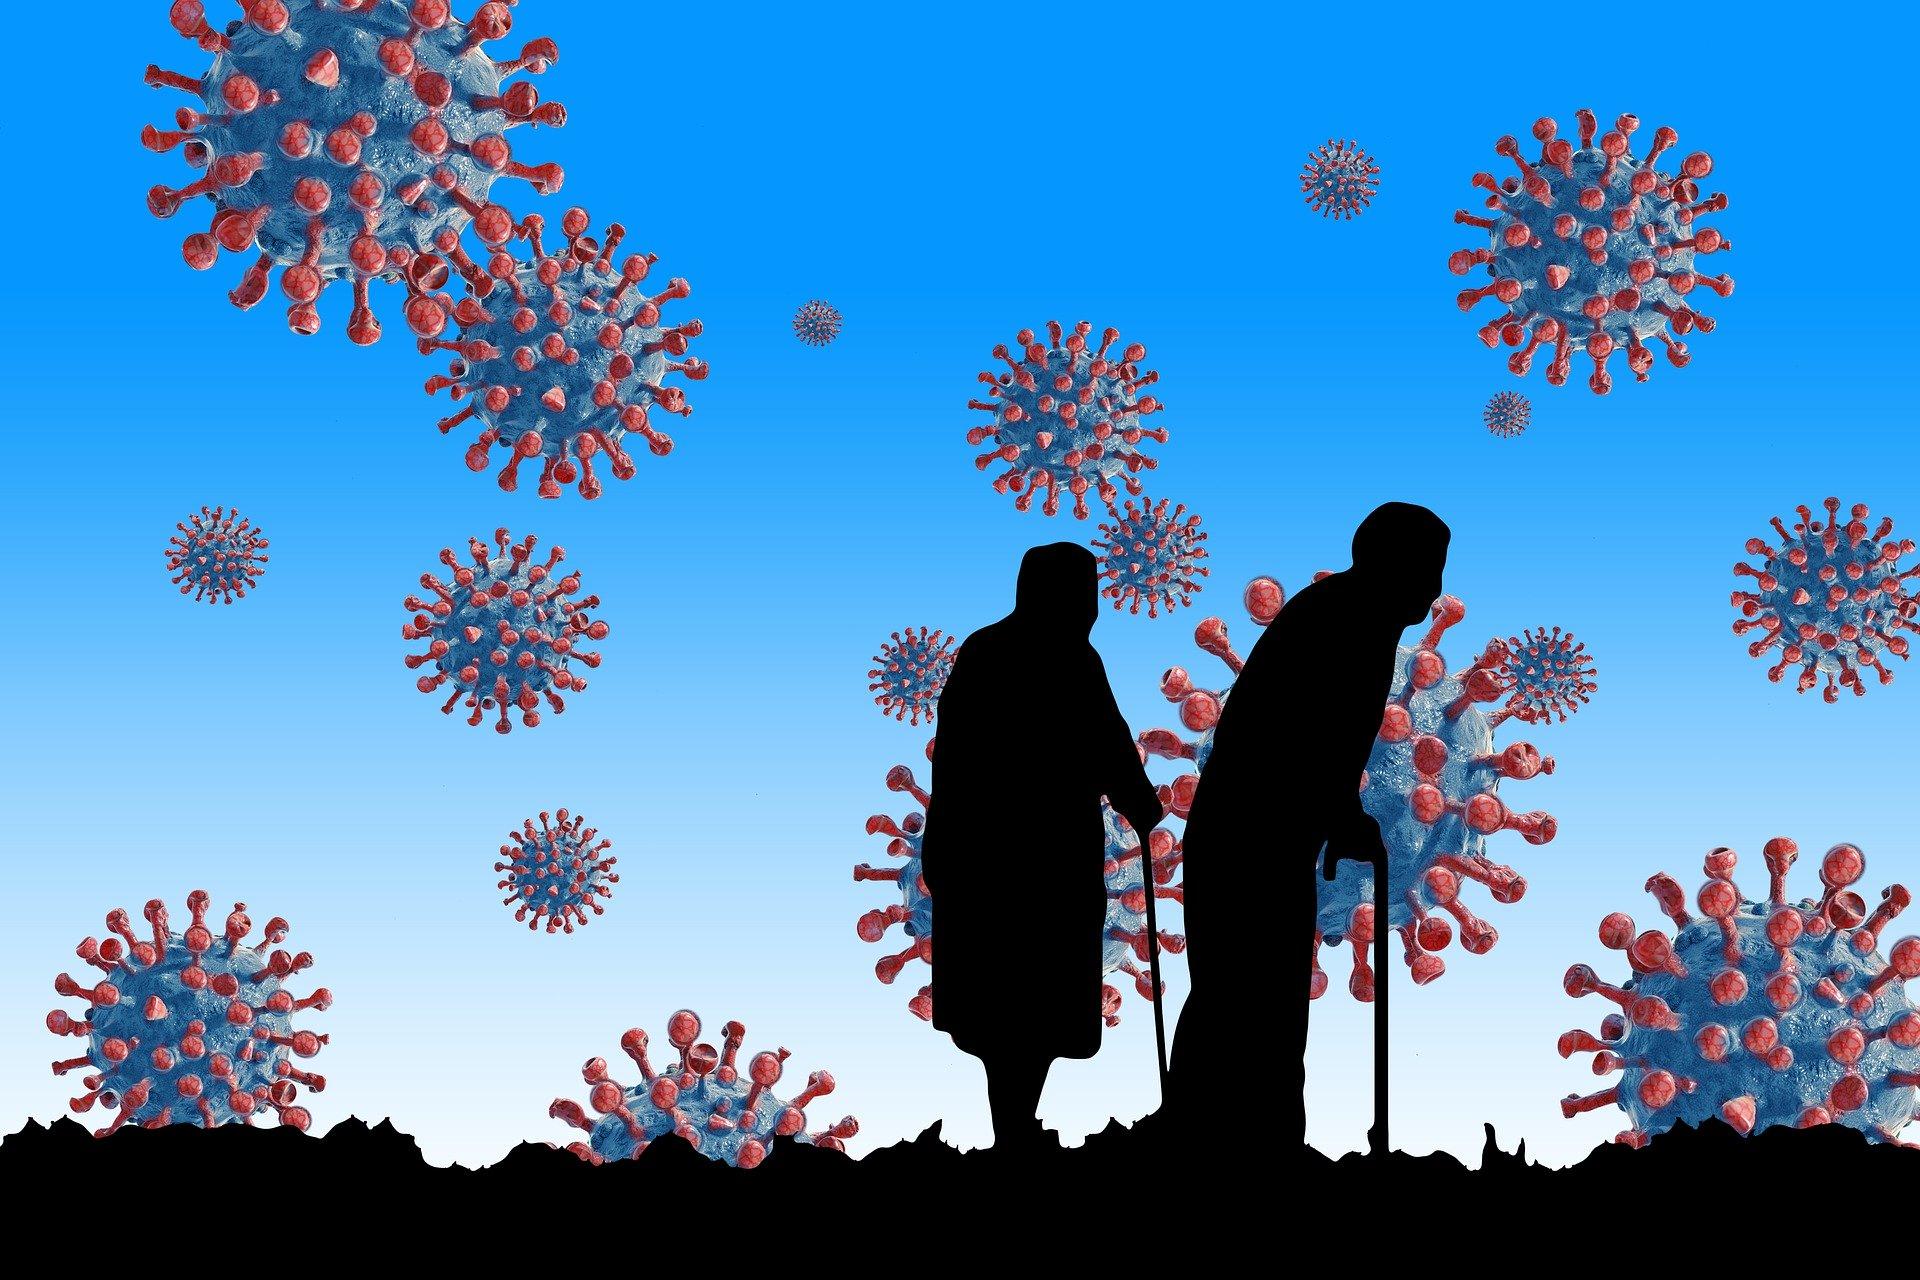 The Risk of Coronavirus Disease (COVID 19) for People with Parkinson's Disease